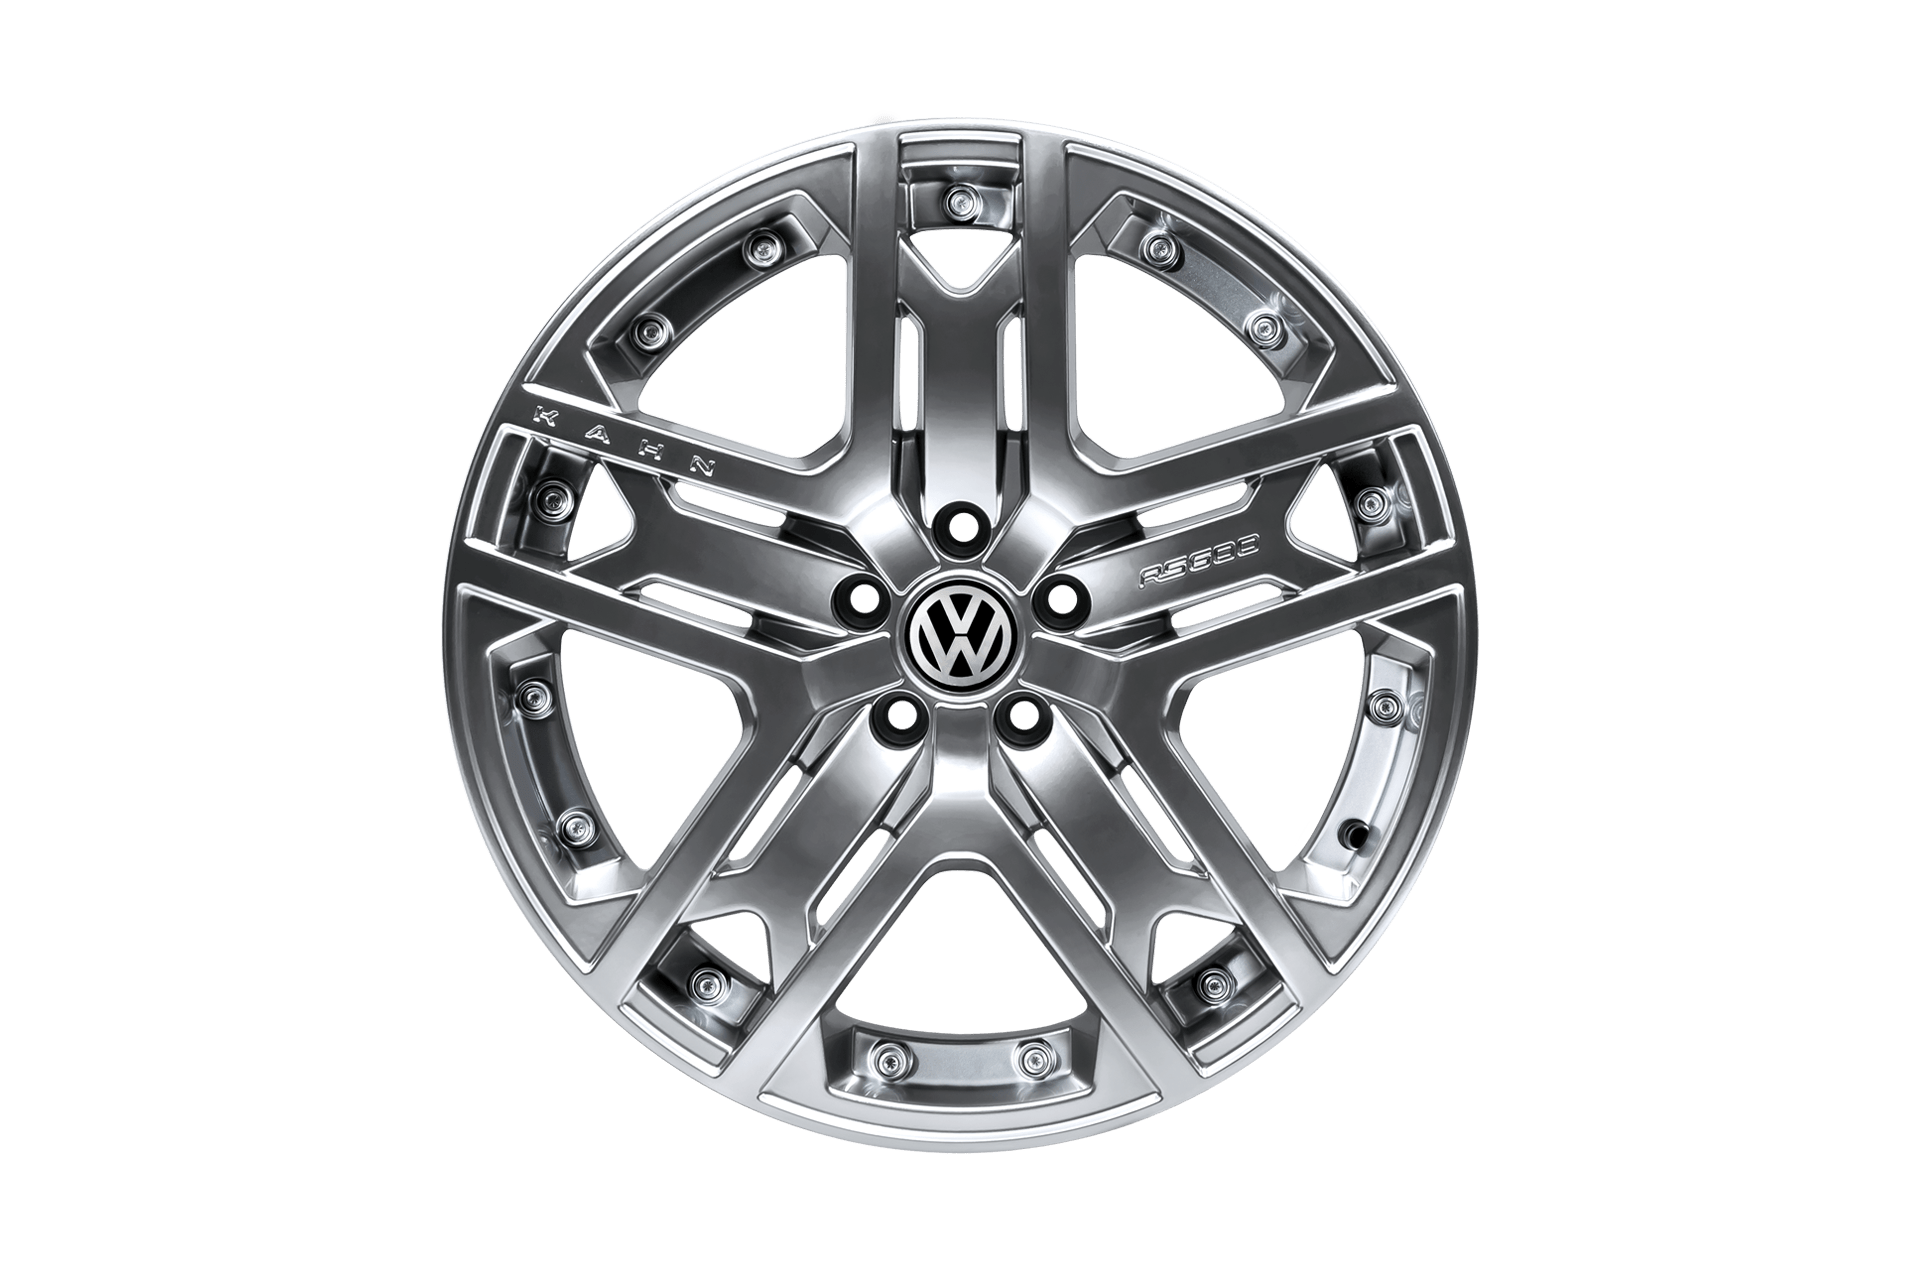 VOLKSWAGEN T5 (2003-2015) RS600 Light Alloy Wheels